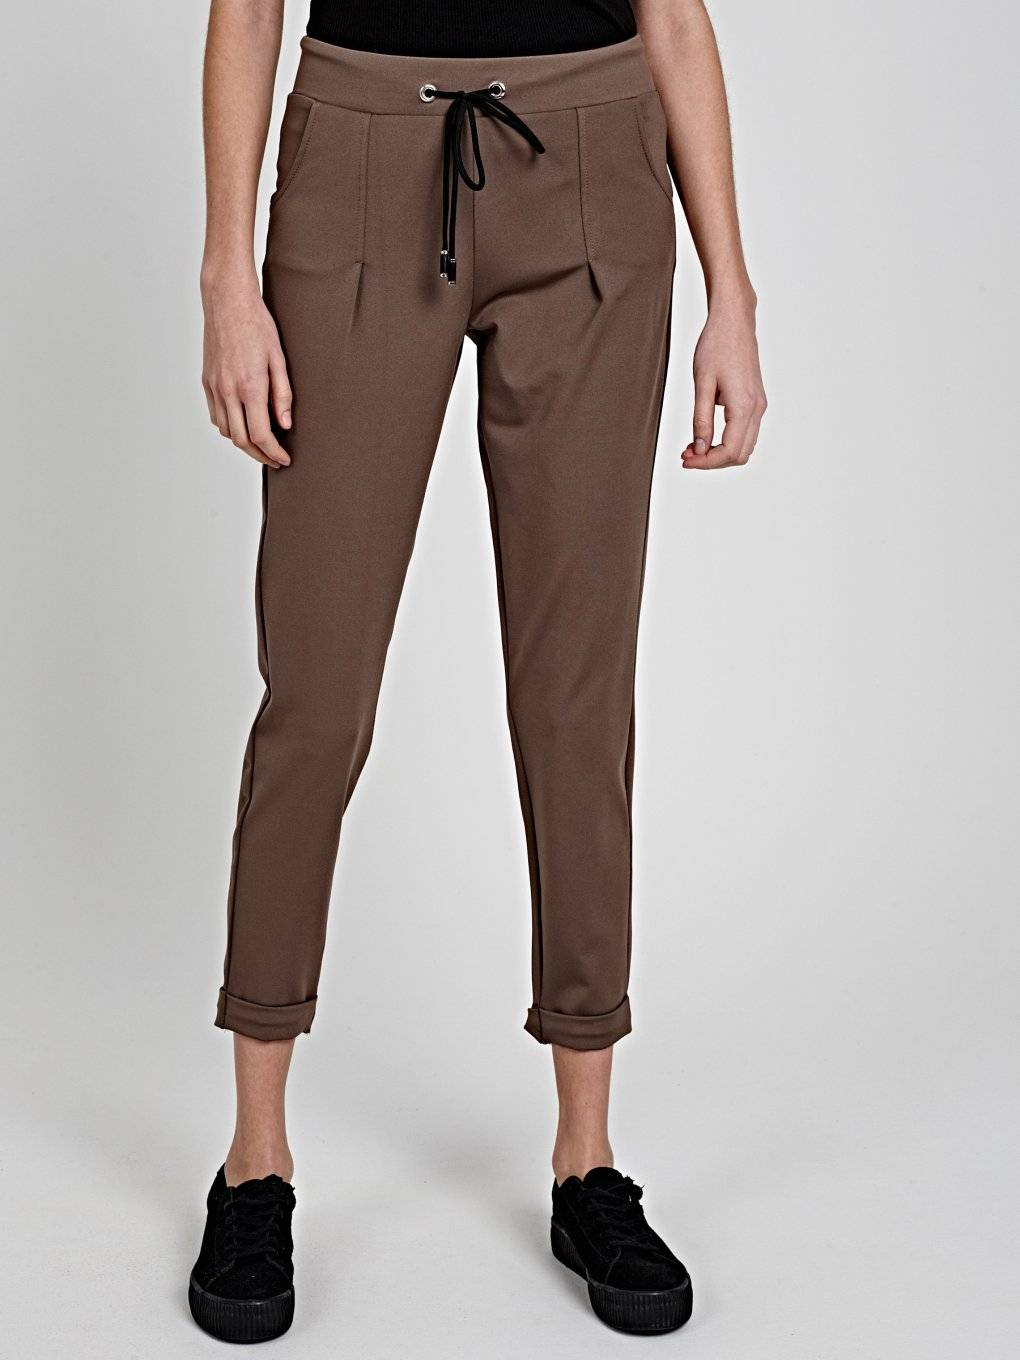 COMFY CARROT FIT TROUSERS